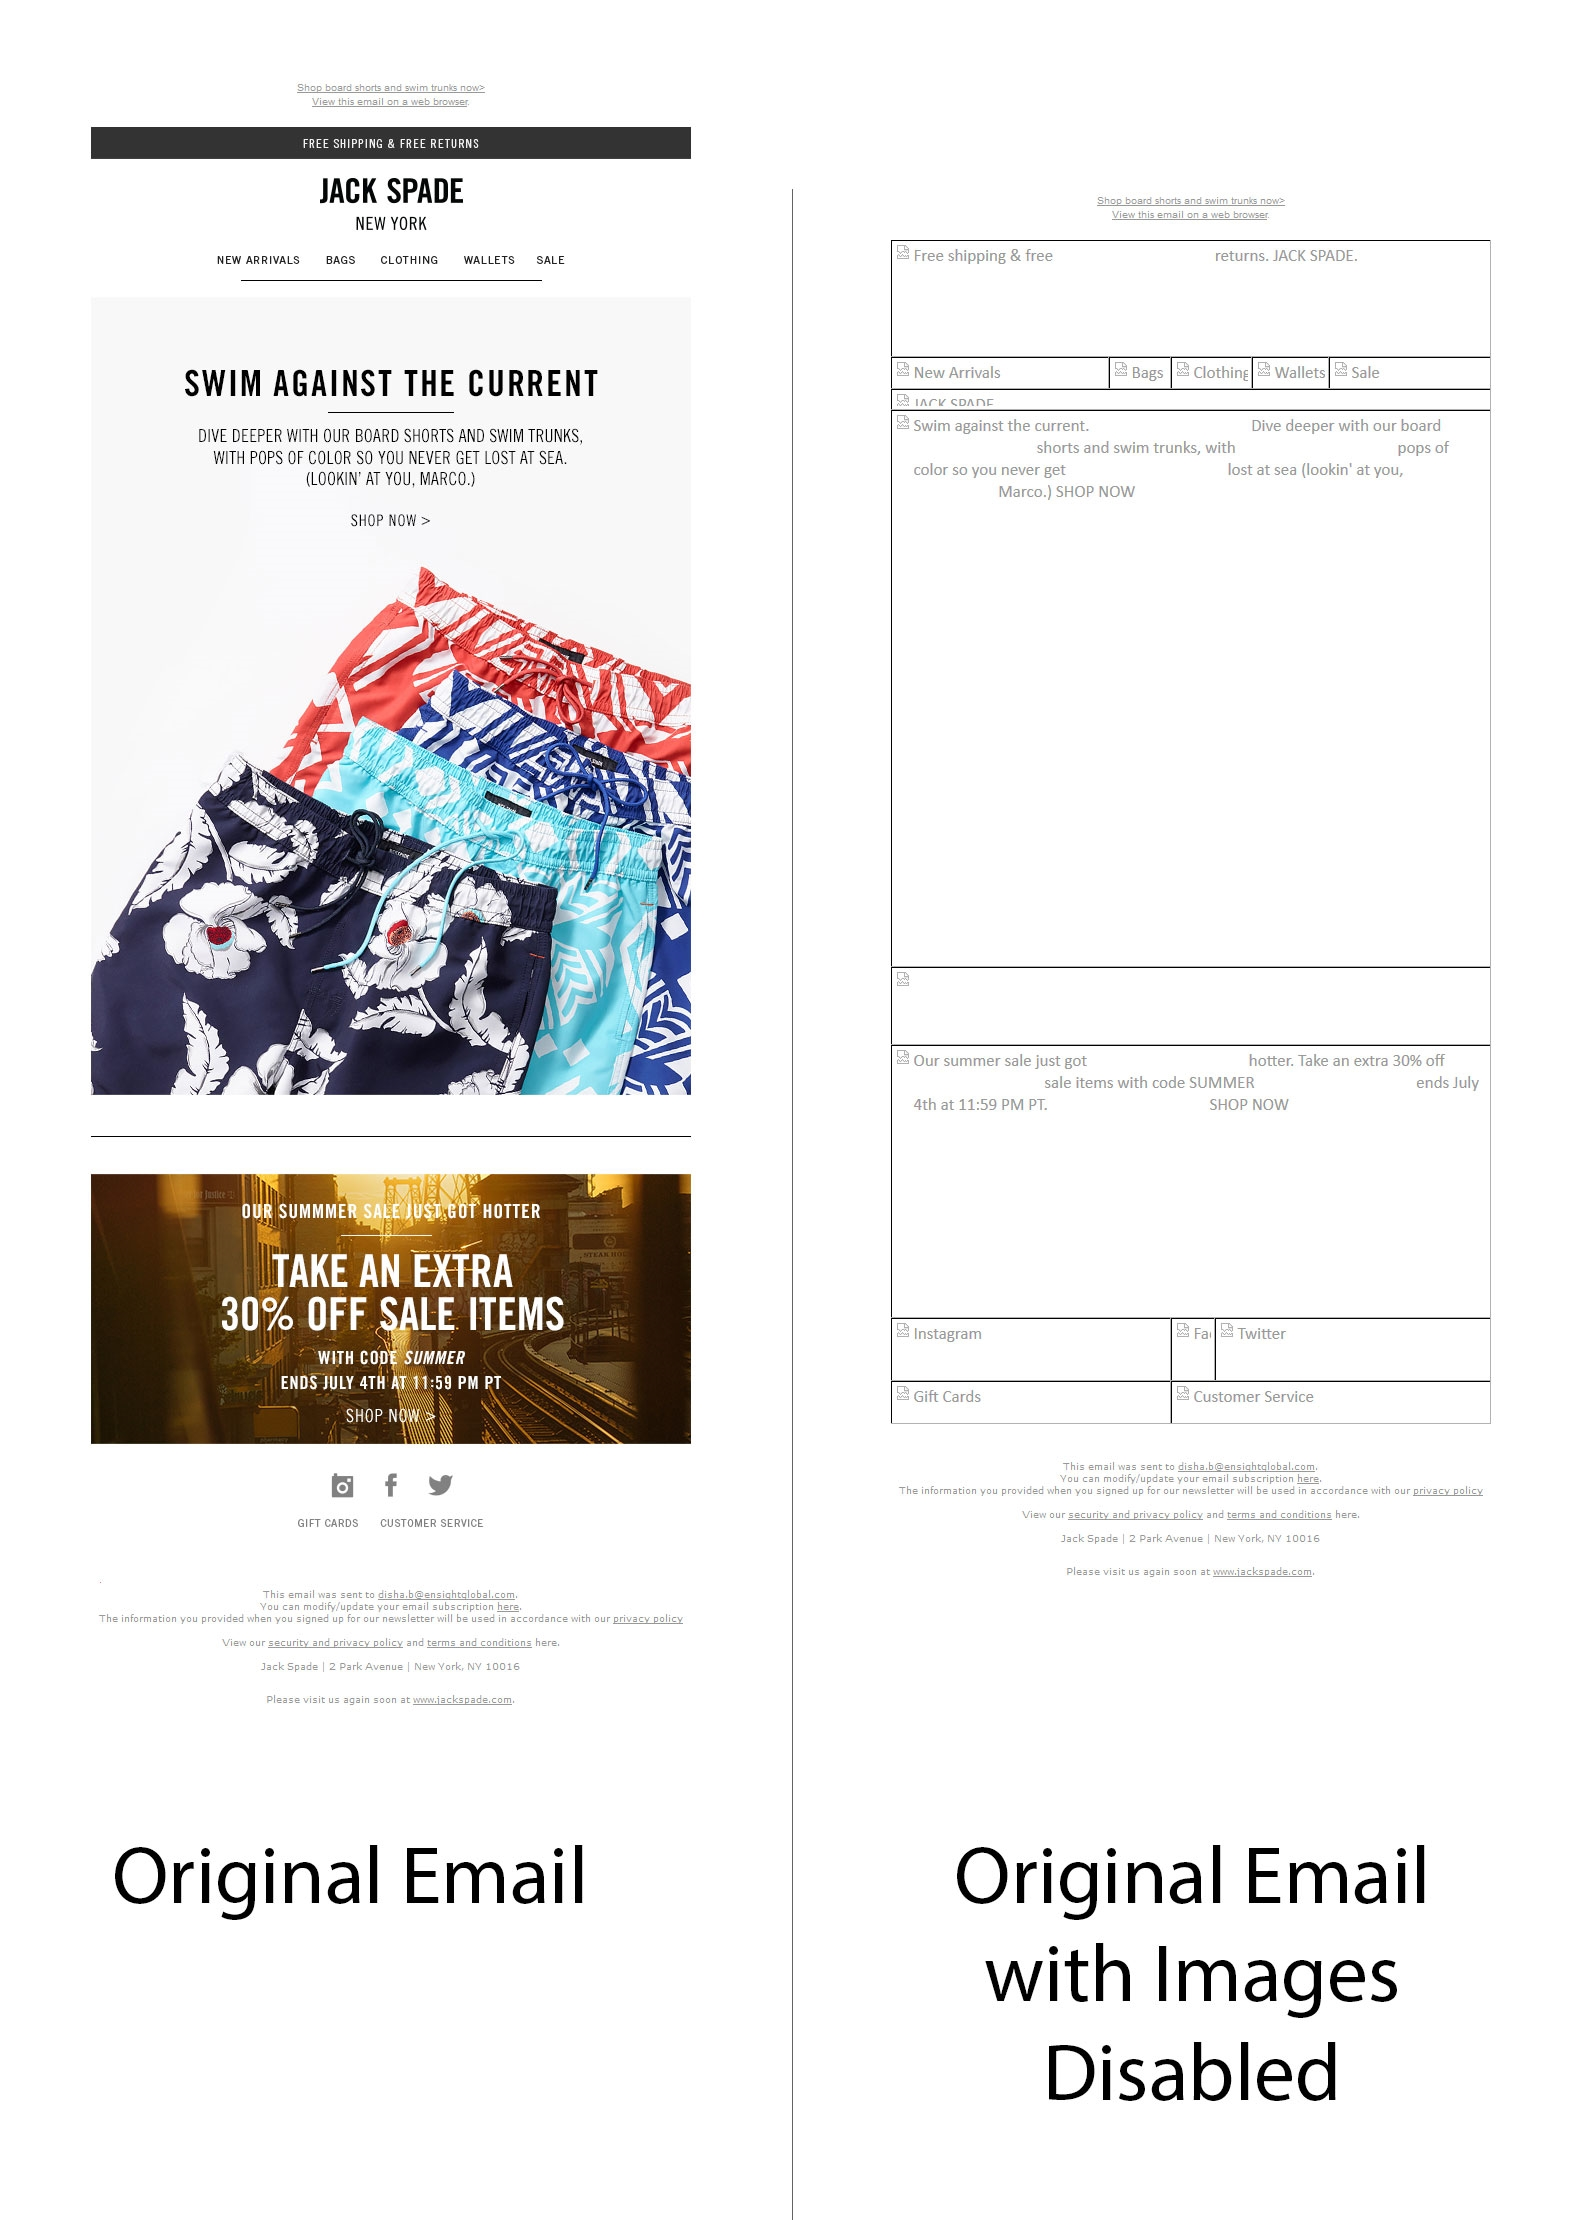 10 Dos and Don'ts of Alt-text in Emails